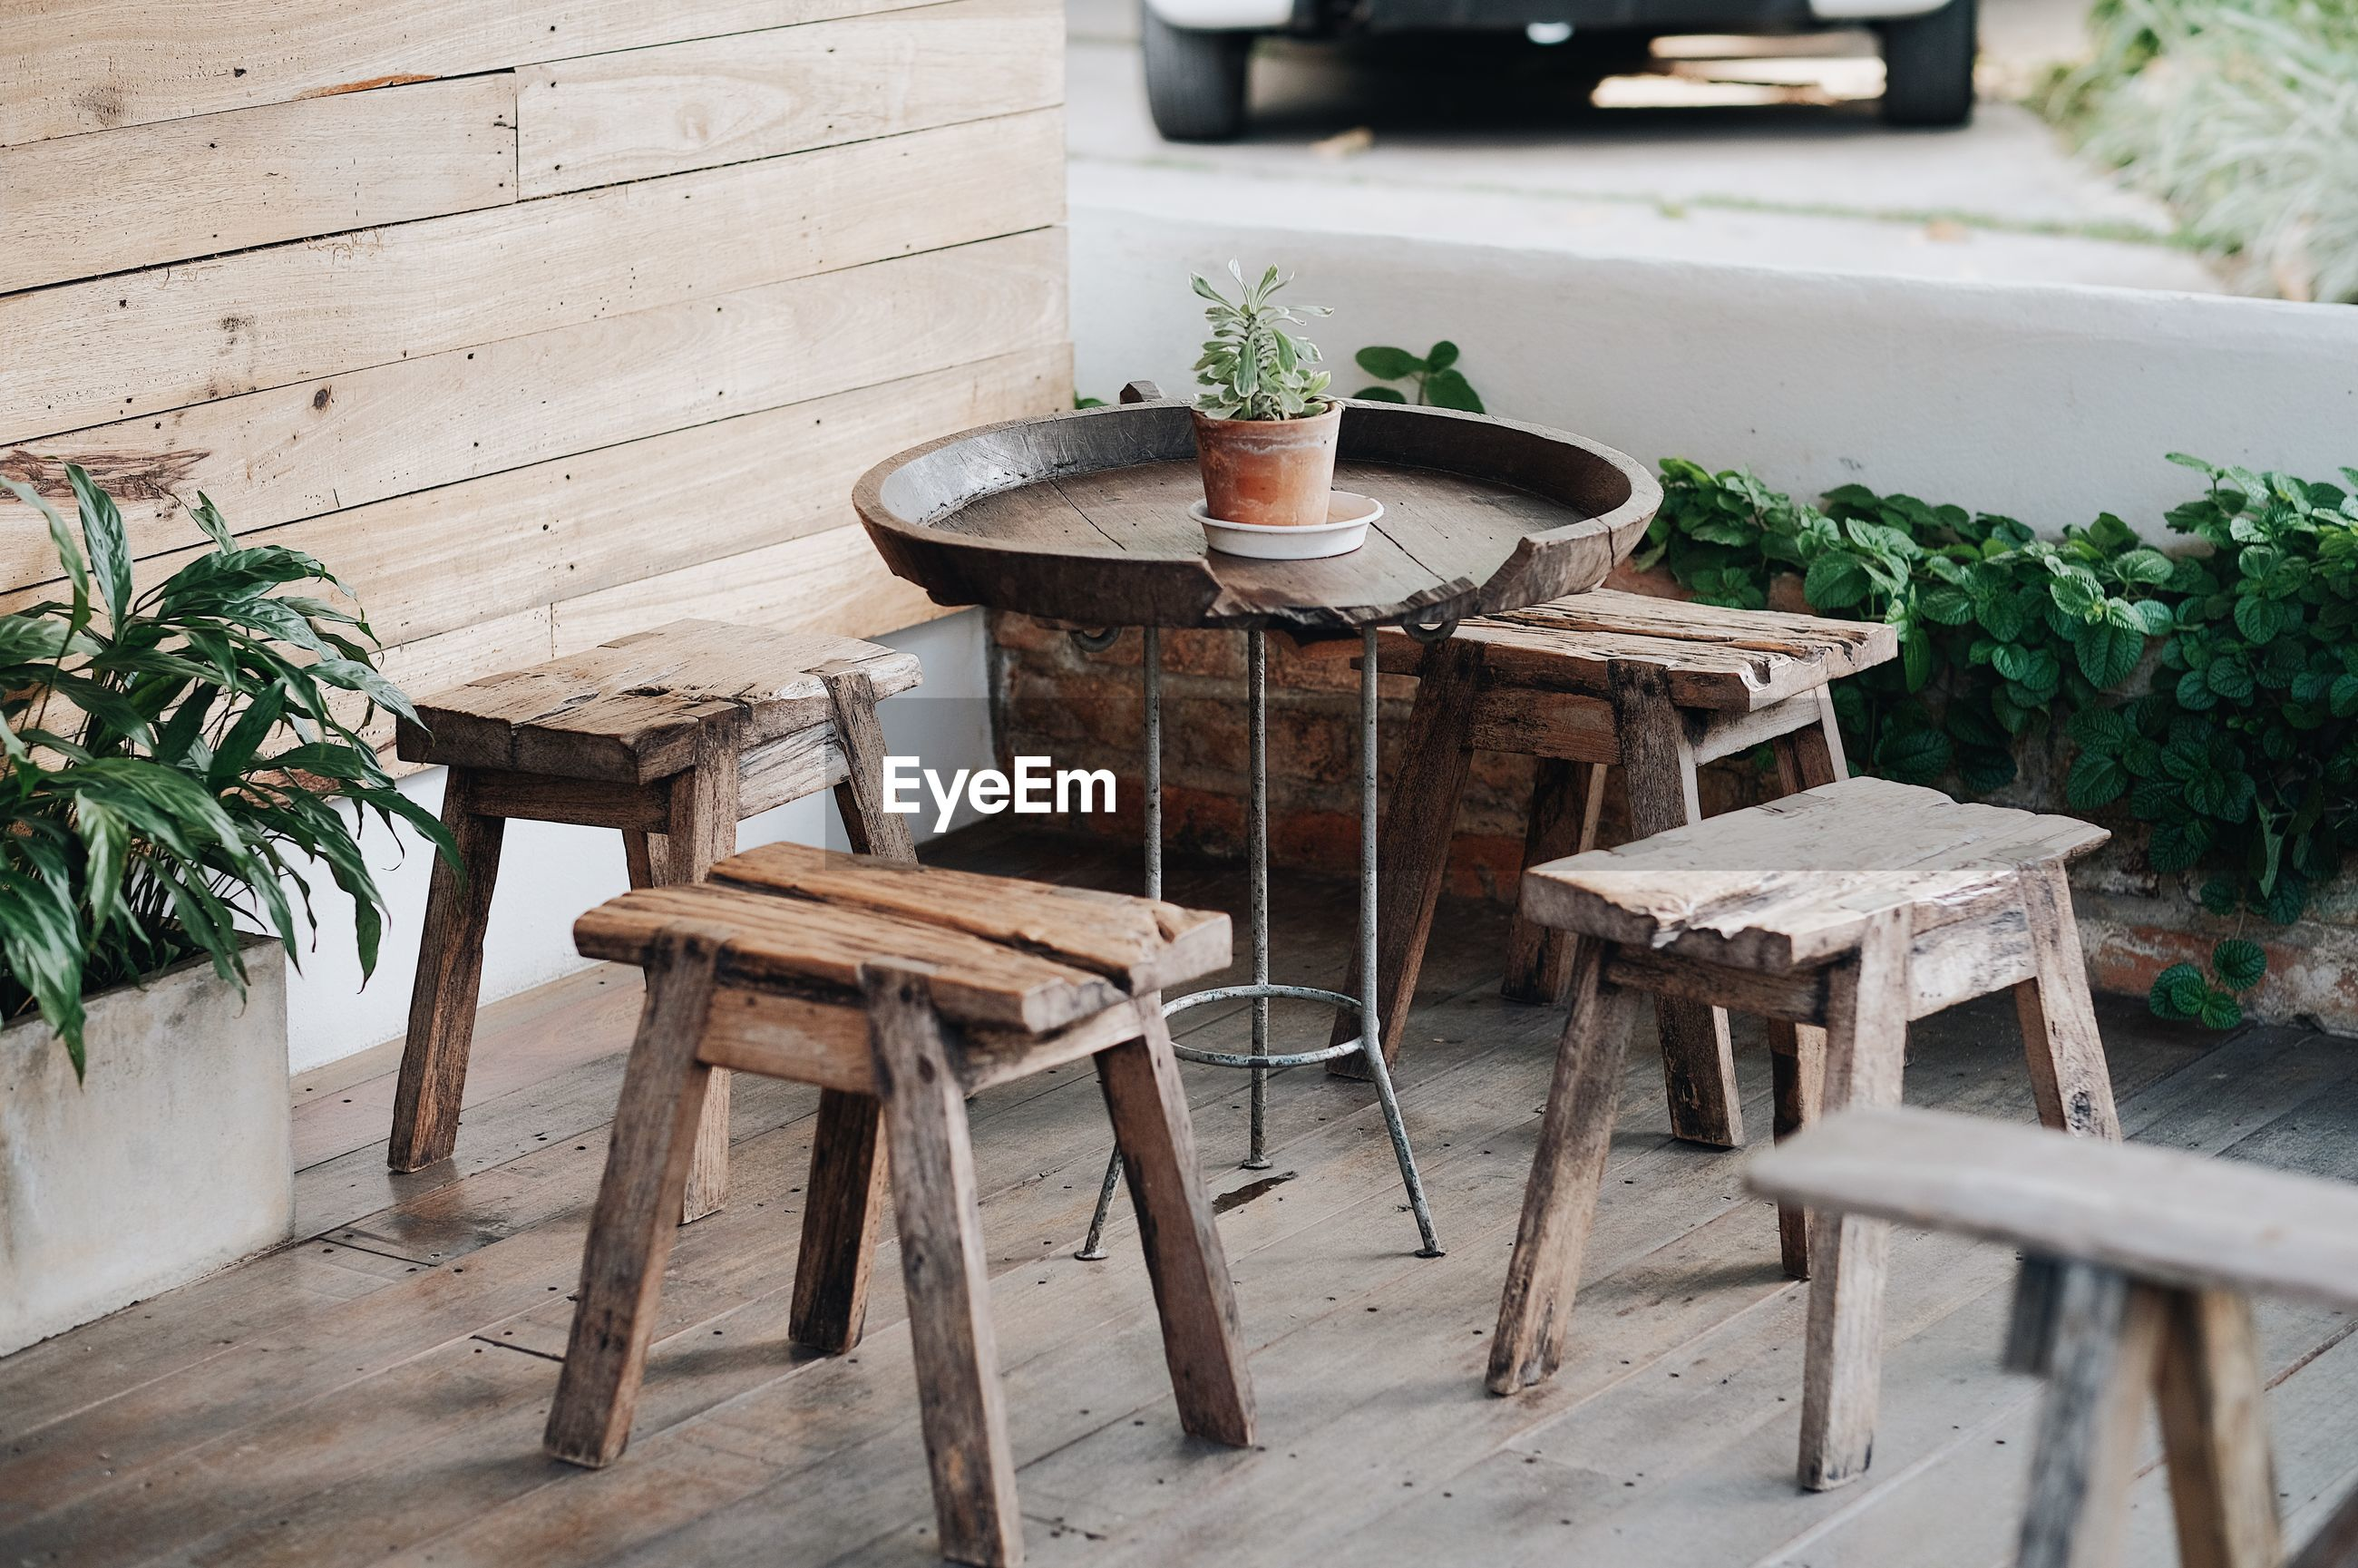 Empty wooden stools on porch